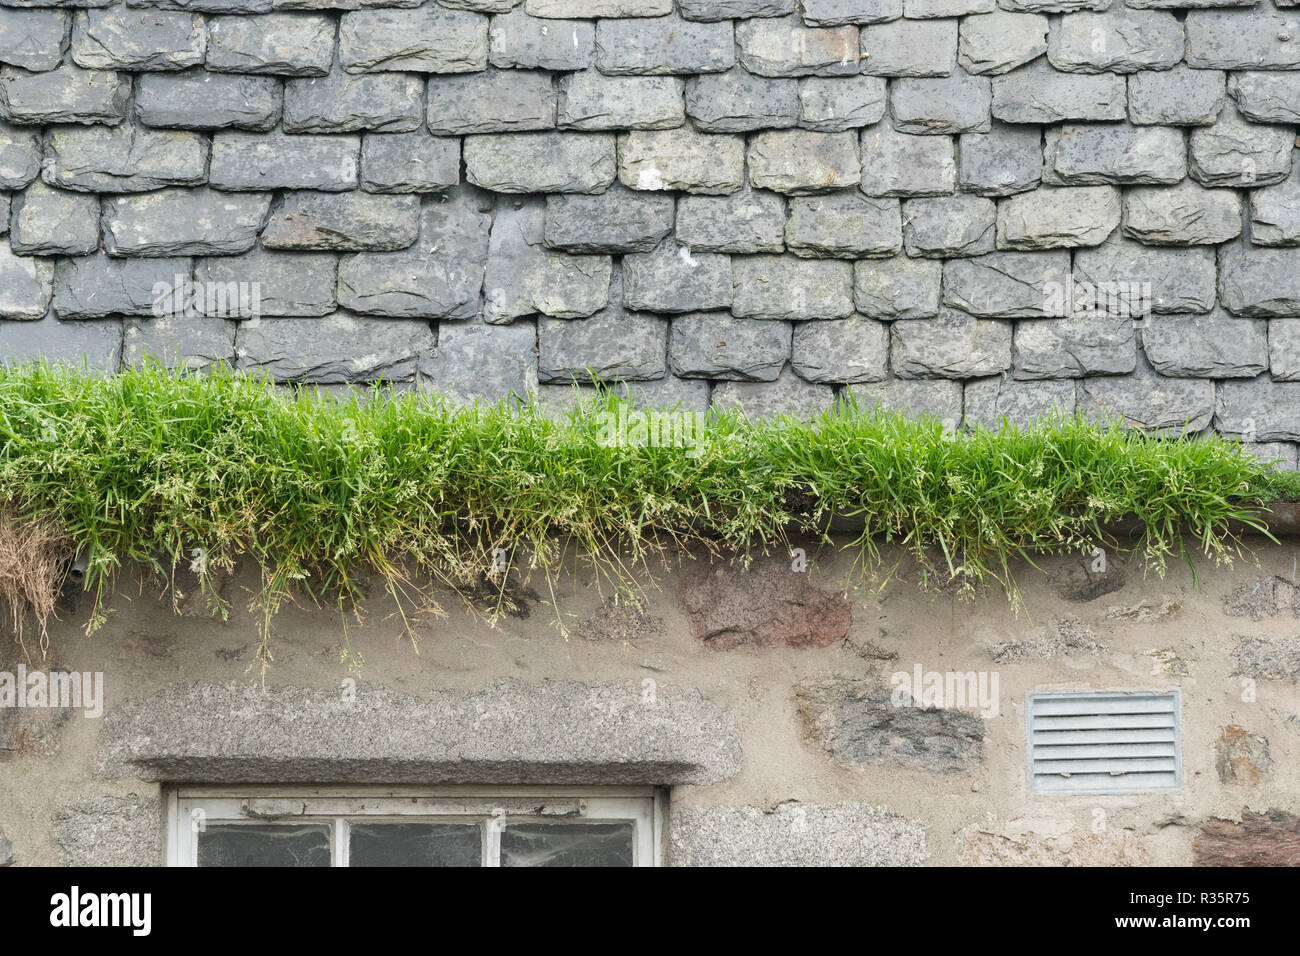 grass growing in guttering due to lack of maintenance - Scotland, UK - Stock Image